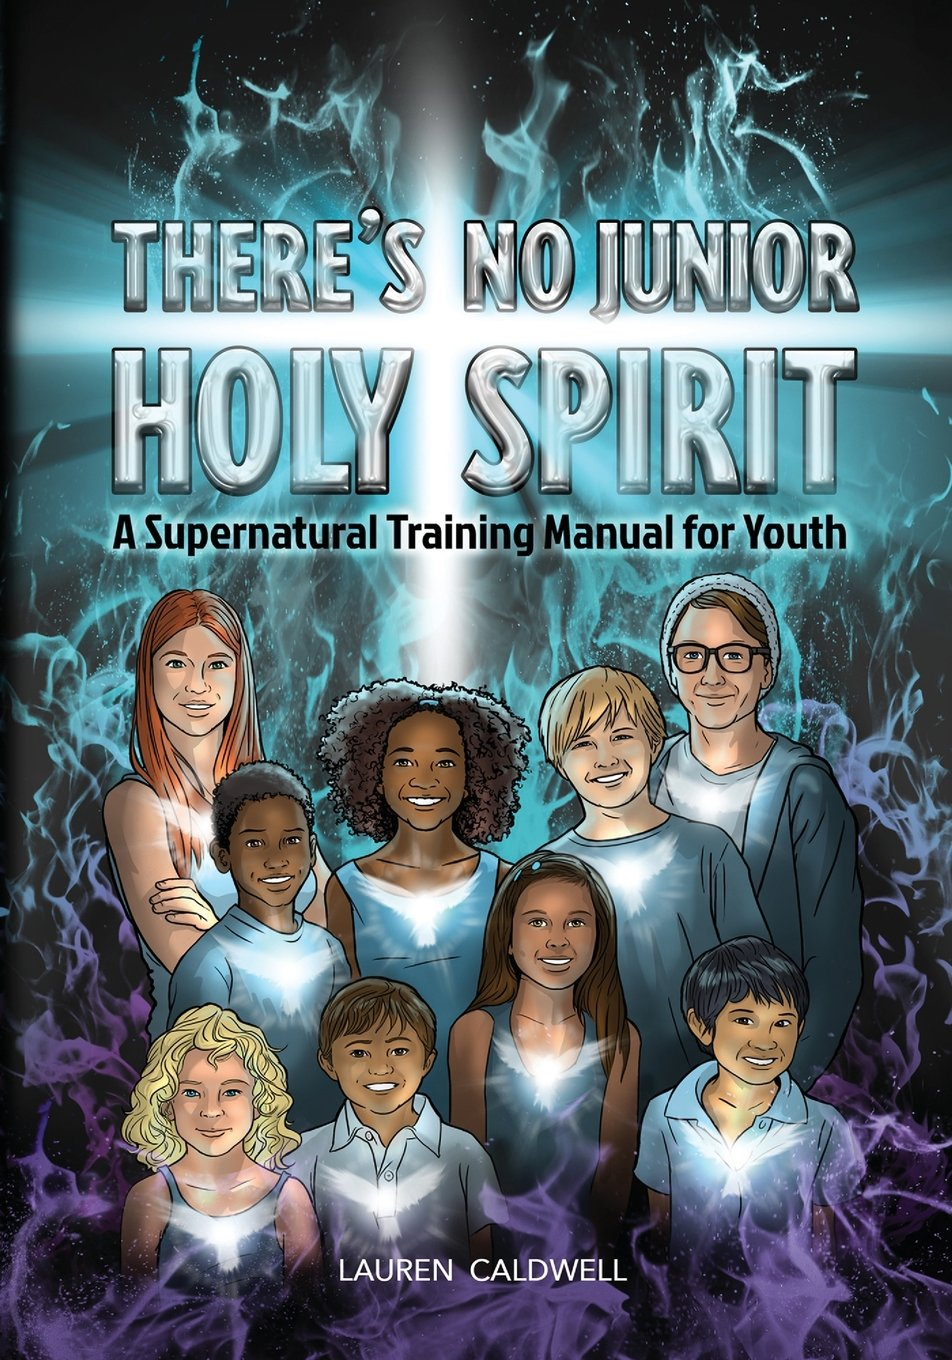 Youth activities holy spirit ebook array there u0027s no junior holy spirit a supernatural training manual for rh amazon com fandeluxe Image collections